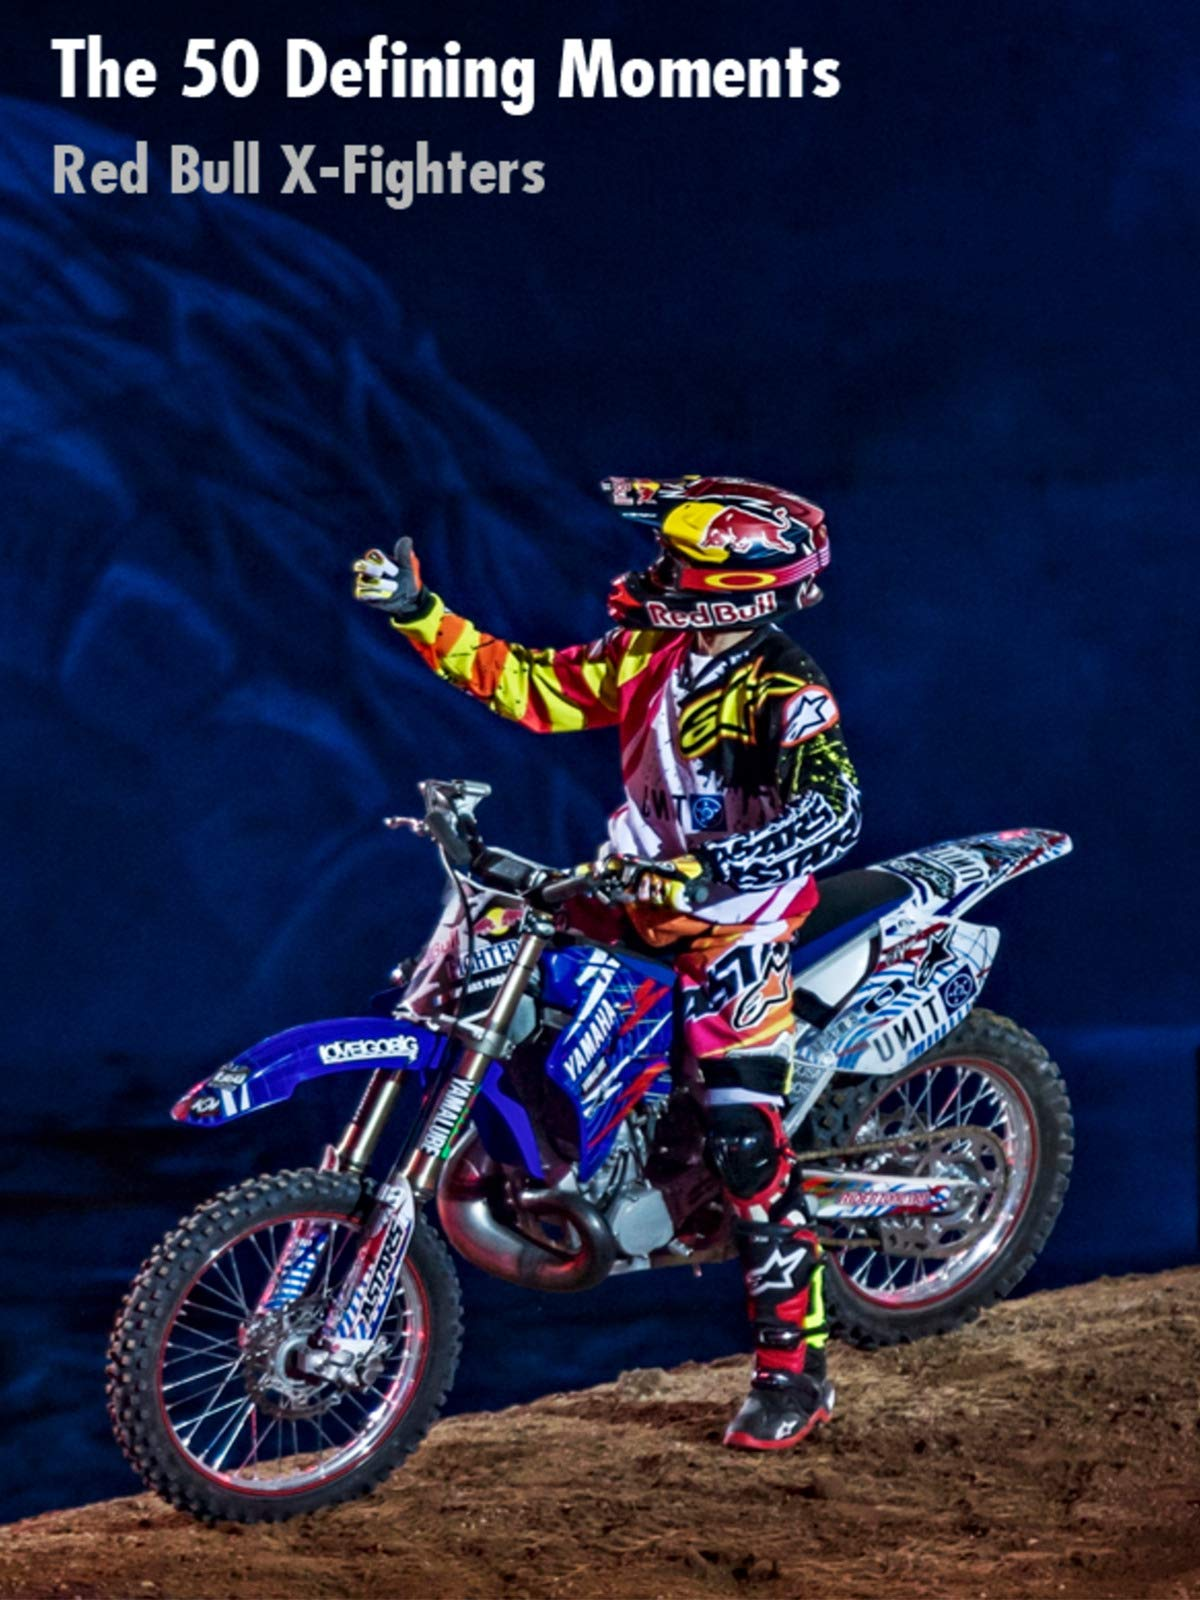 The 50 Red Bull X-Fighters Documentary